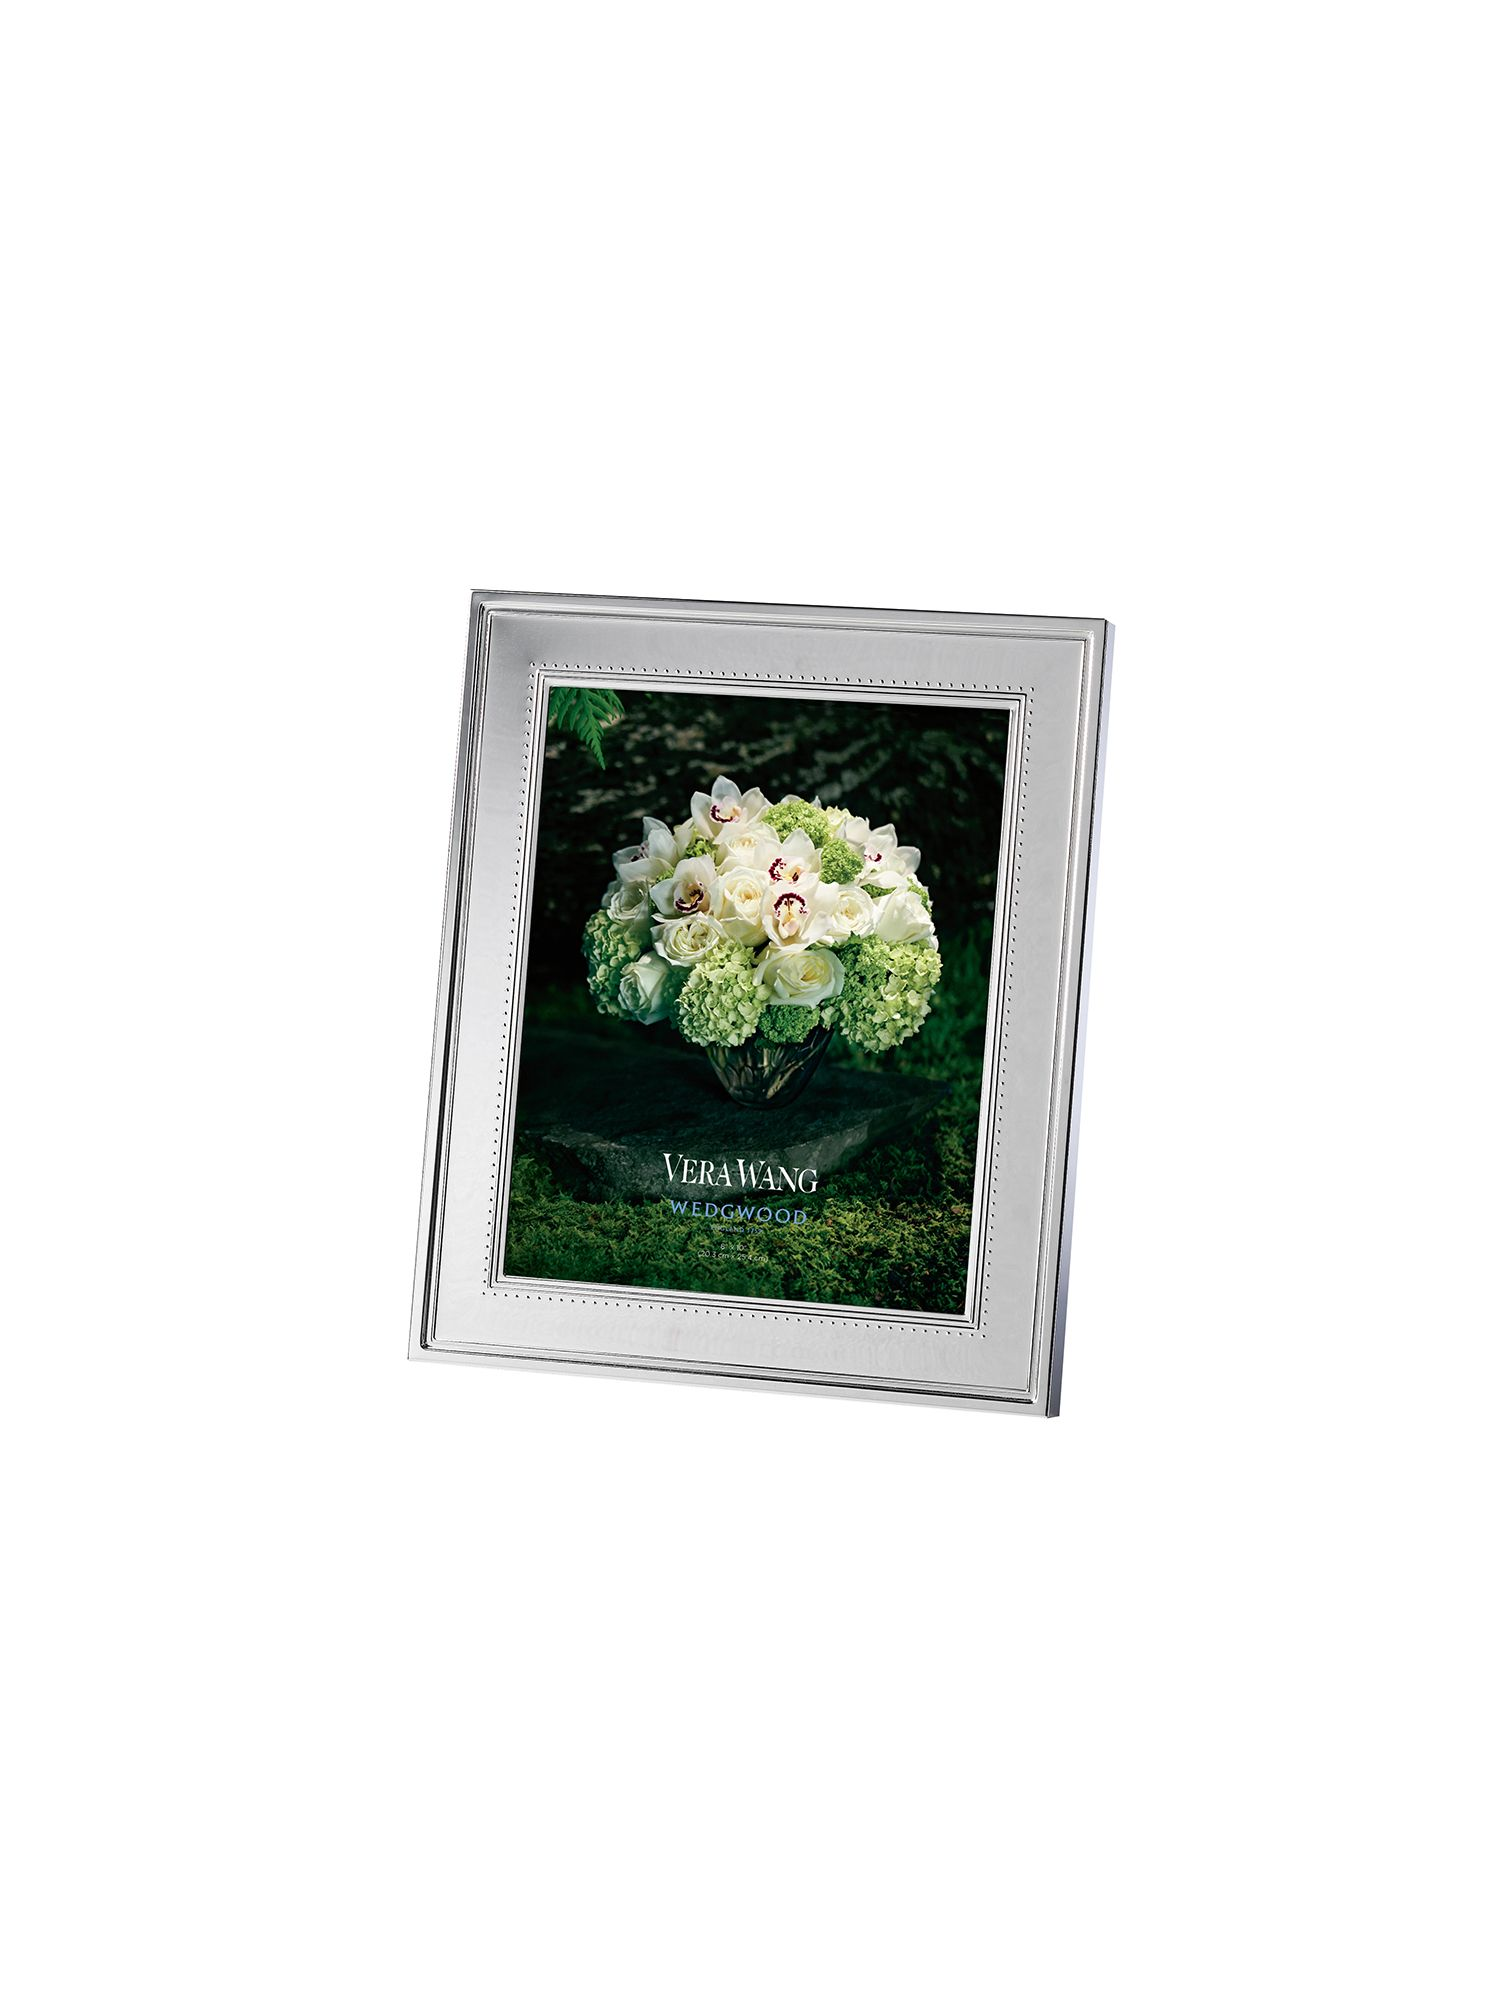 Vera wang grosgrain photo frame 8x10in